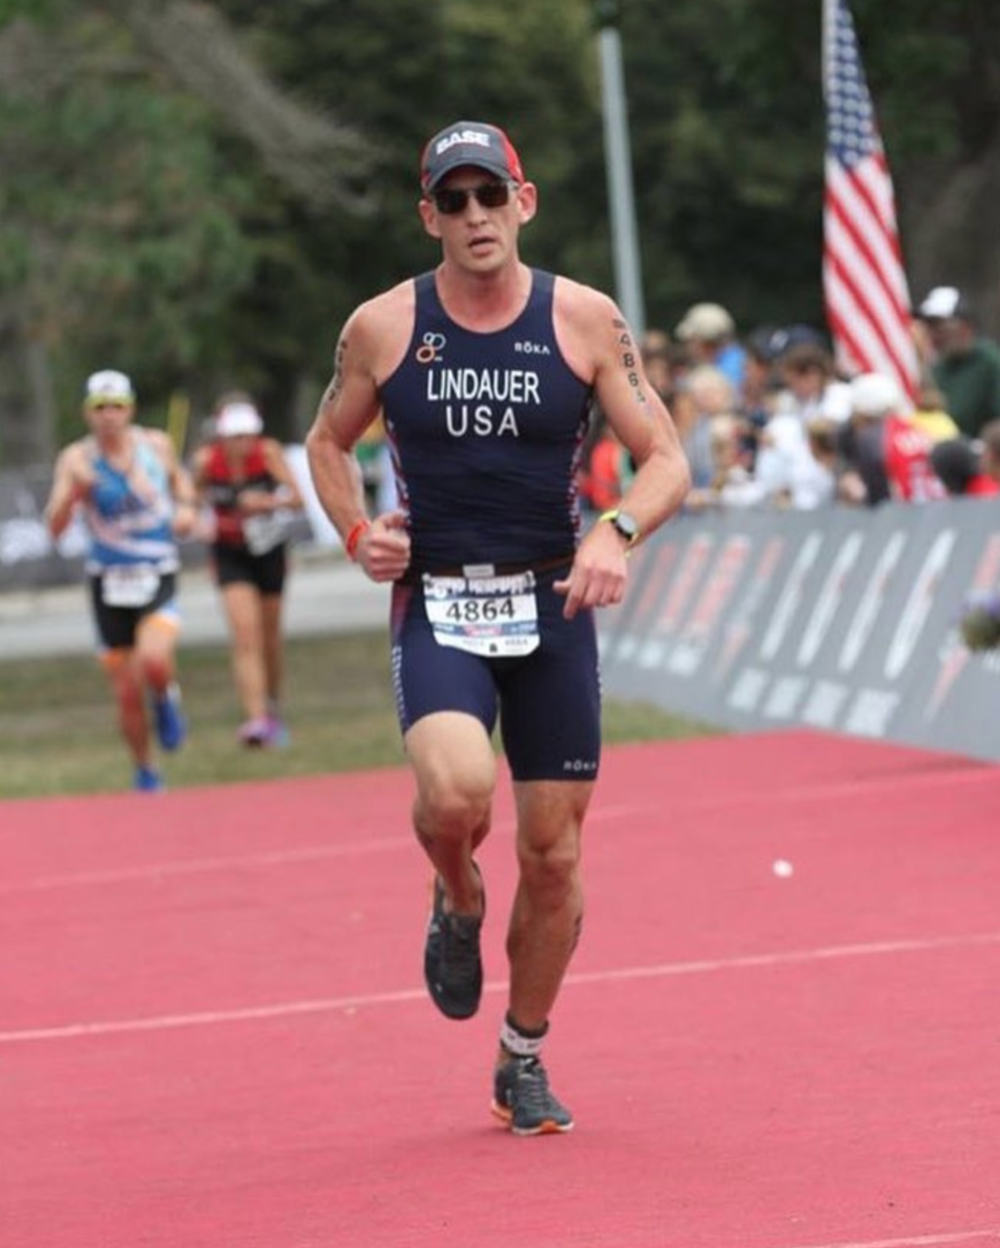 Steve crushing the run course for Team USA